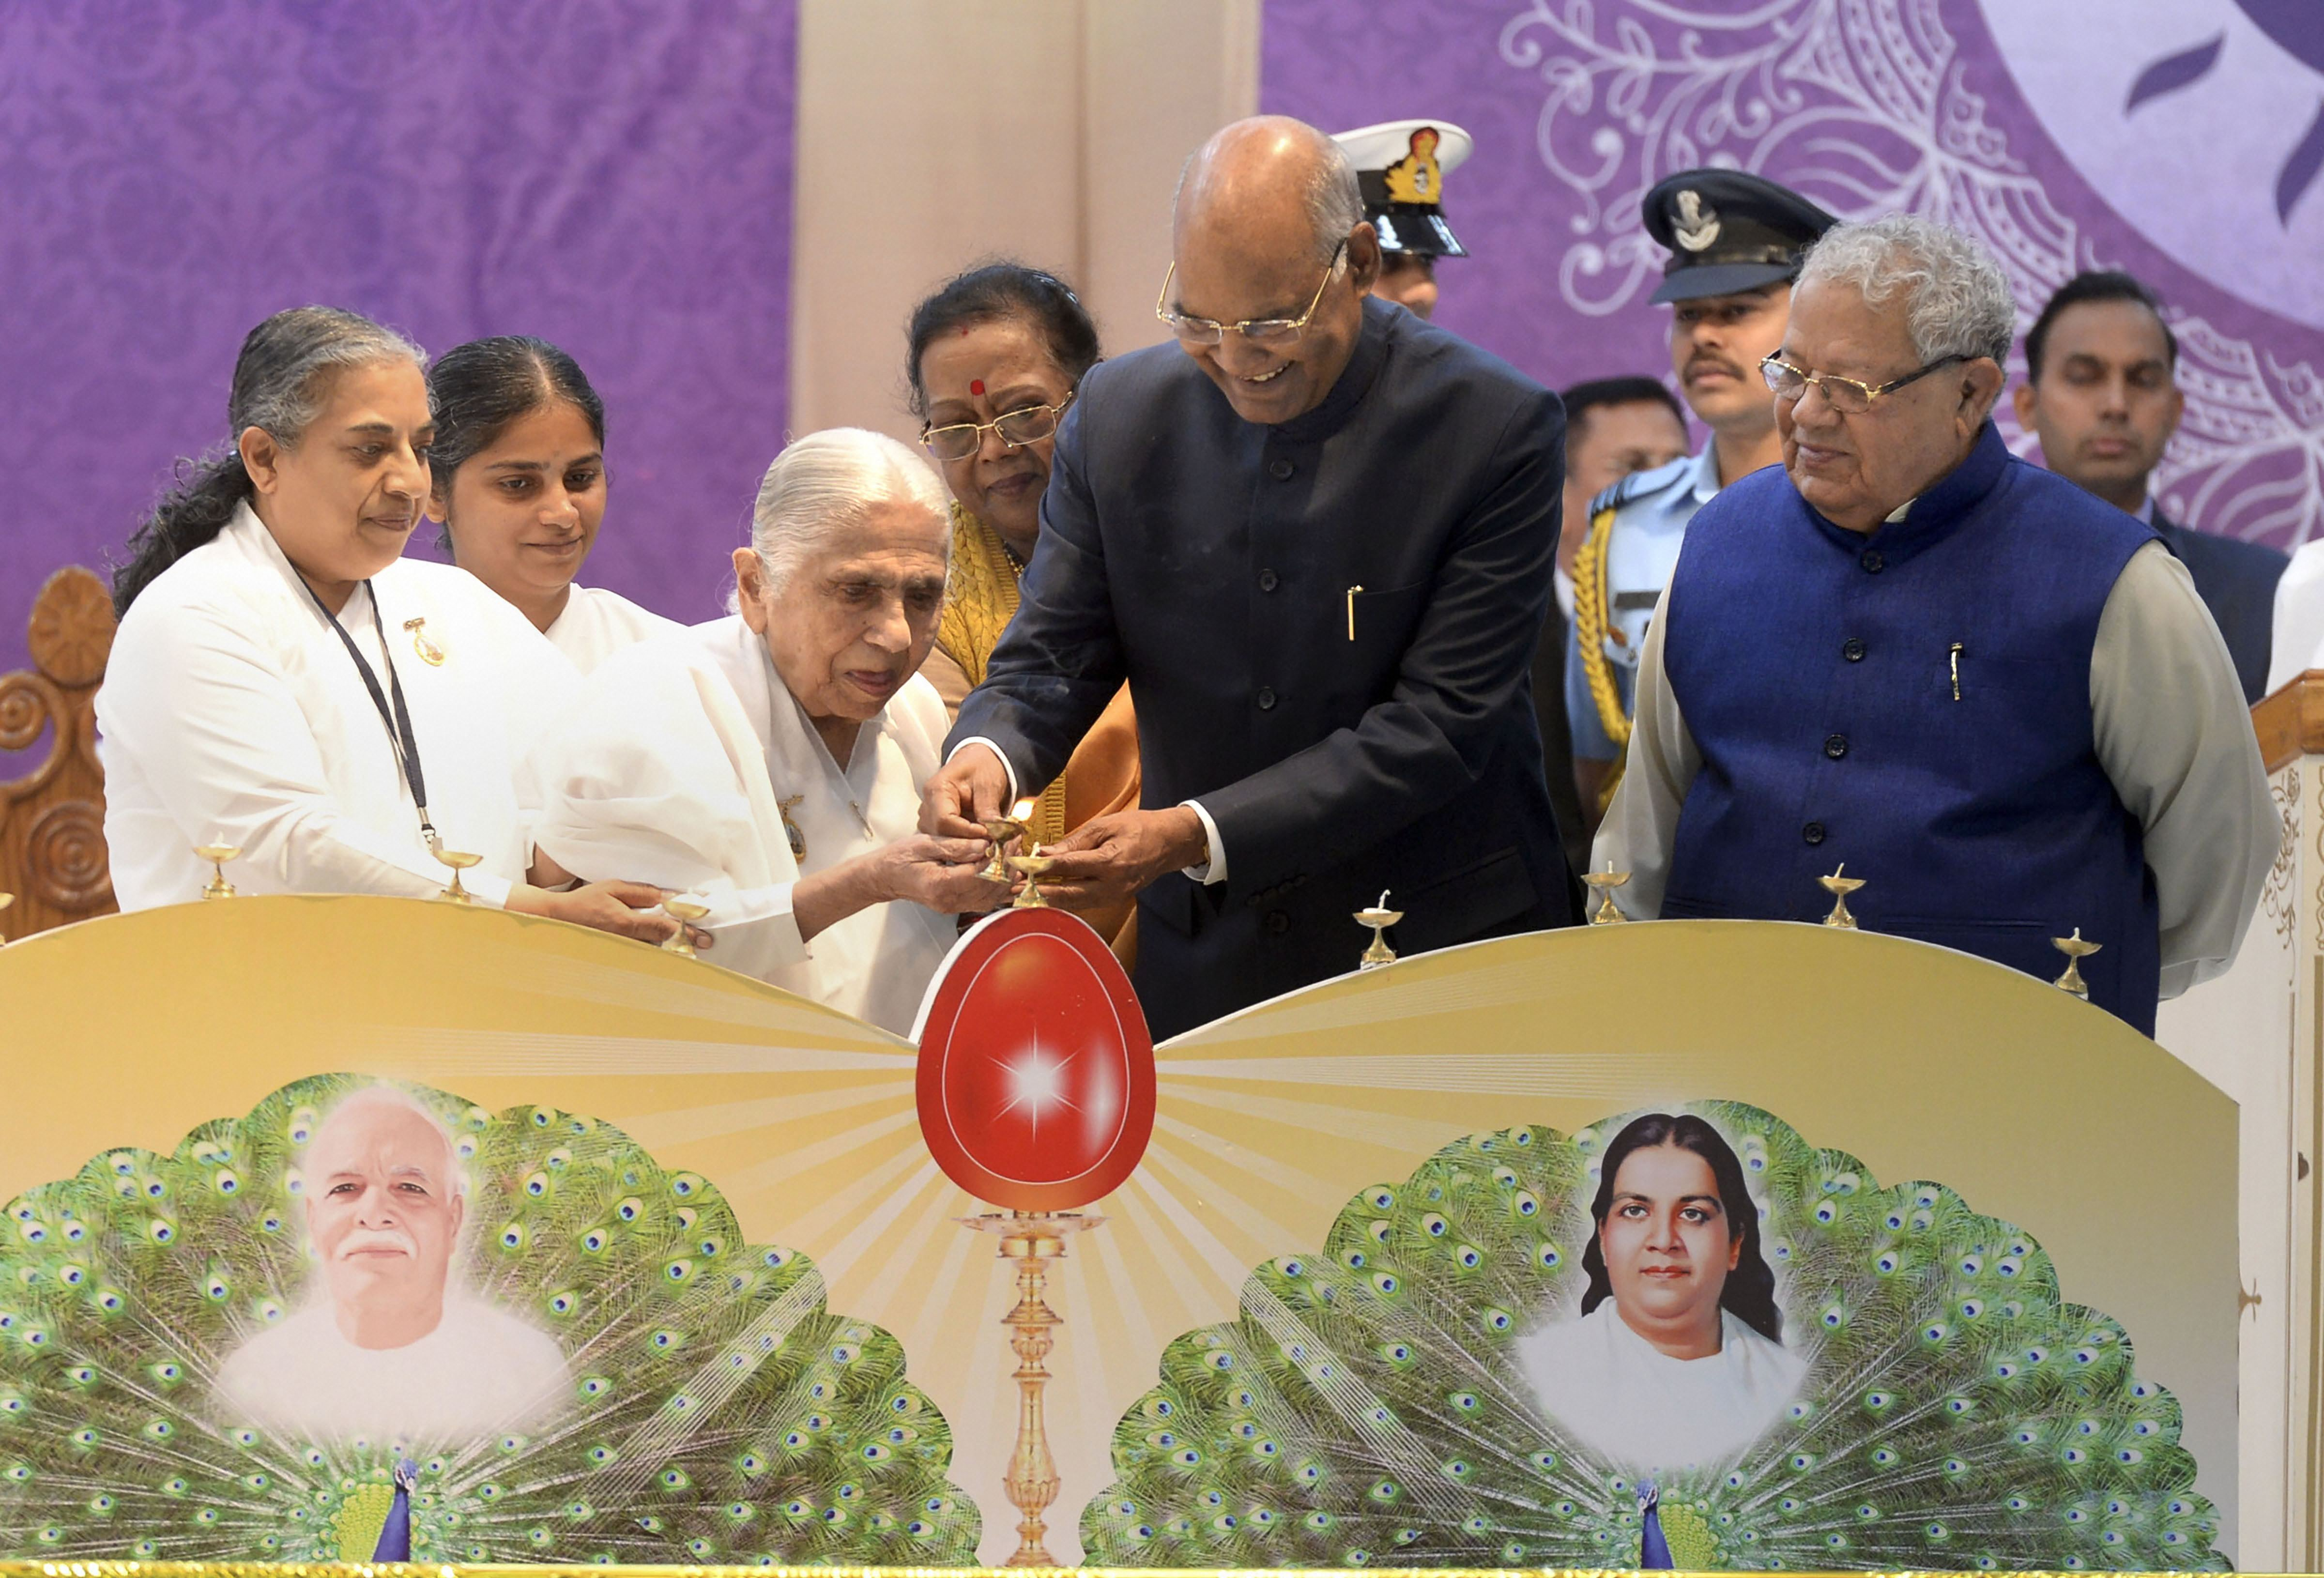 President Ram Nath Kovind at a national convention on 'empowerment of women for social transformation' at the headquarters of Brahma Kumaris in Mount Abu, Rajasthan, Friday, December 6, 2019.